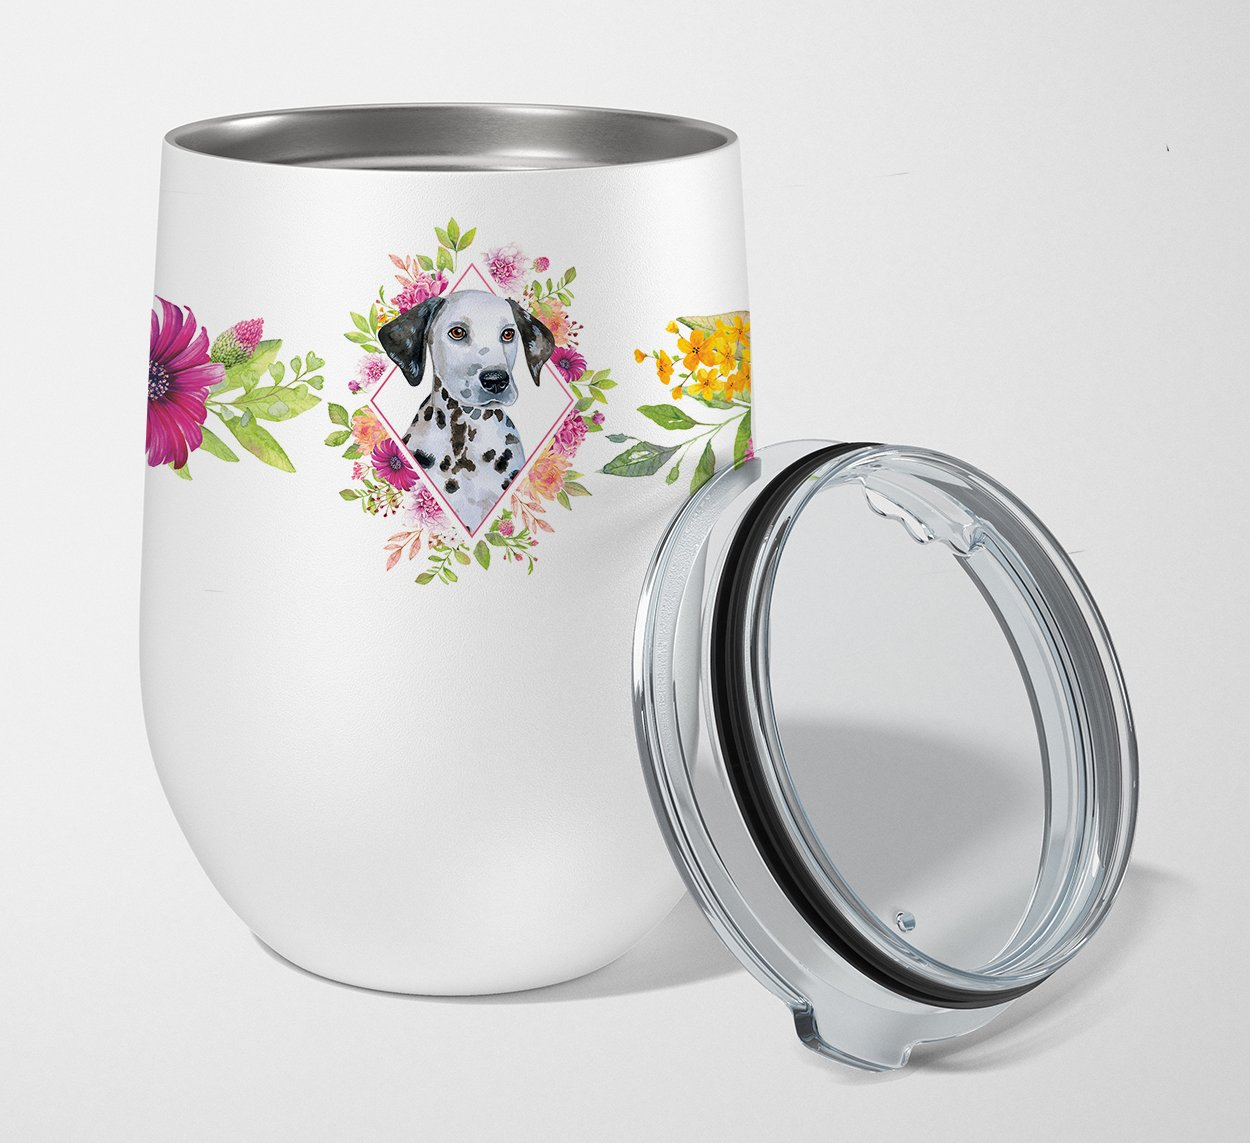 Dalmatian Puppy Pink Flowers Stainless Steel 12 oz Stemless Wine Glass CK4136TBL12 by Caroline's Treasures